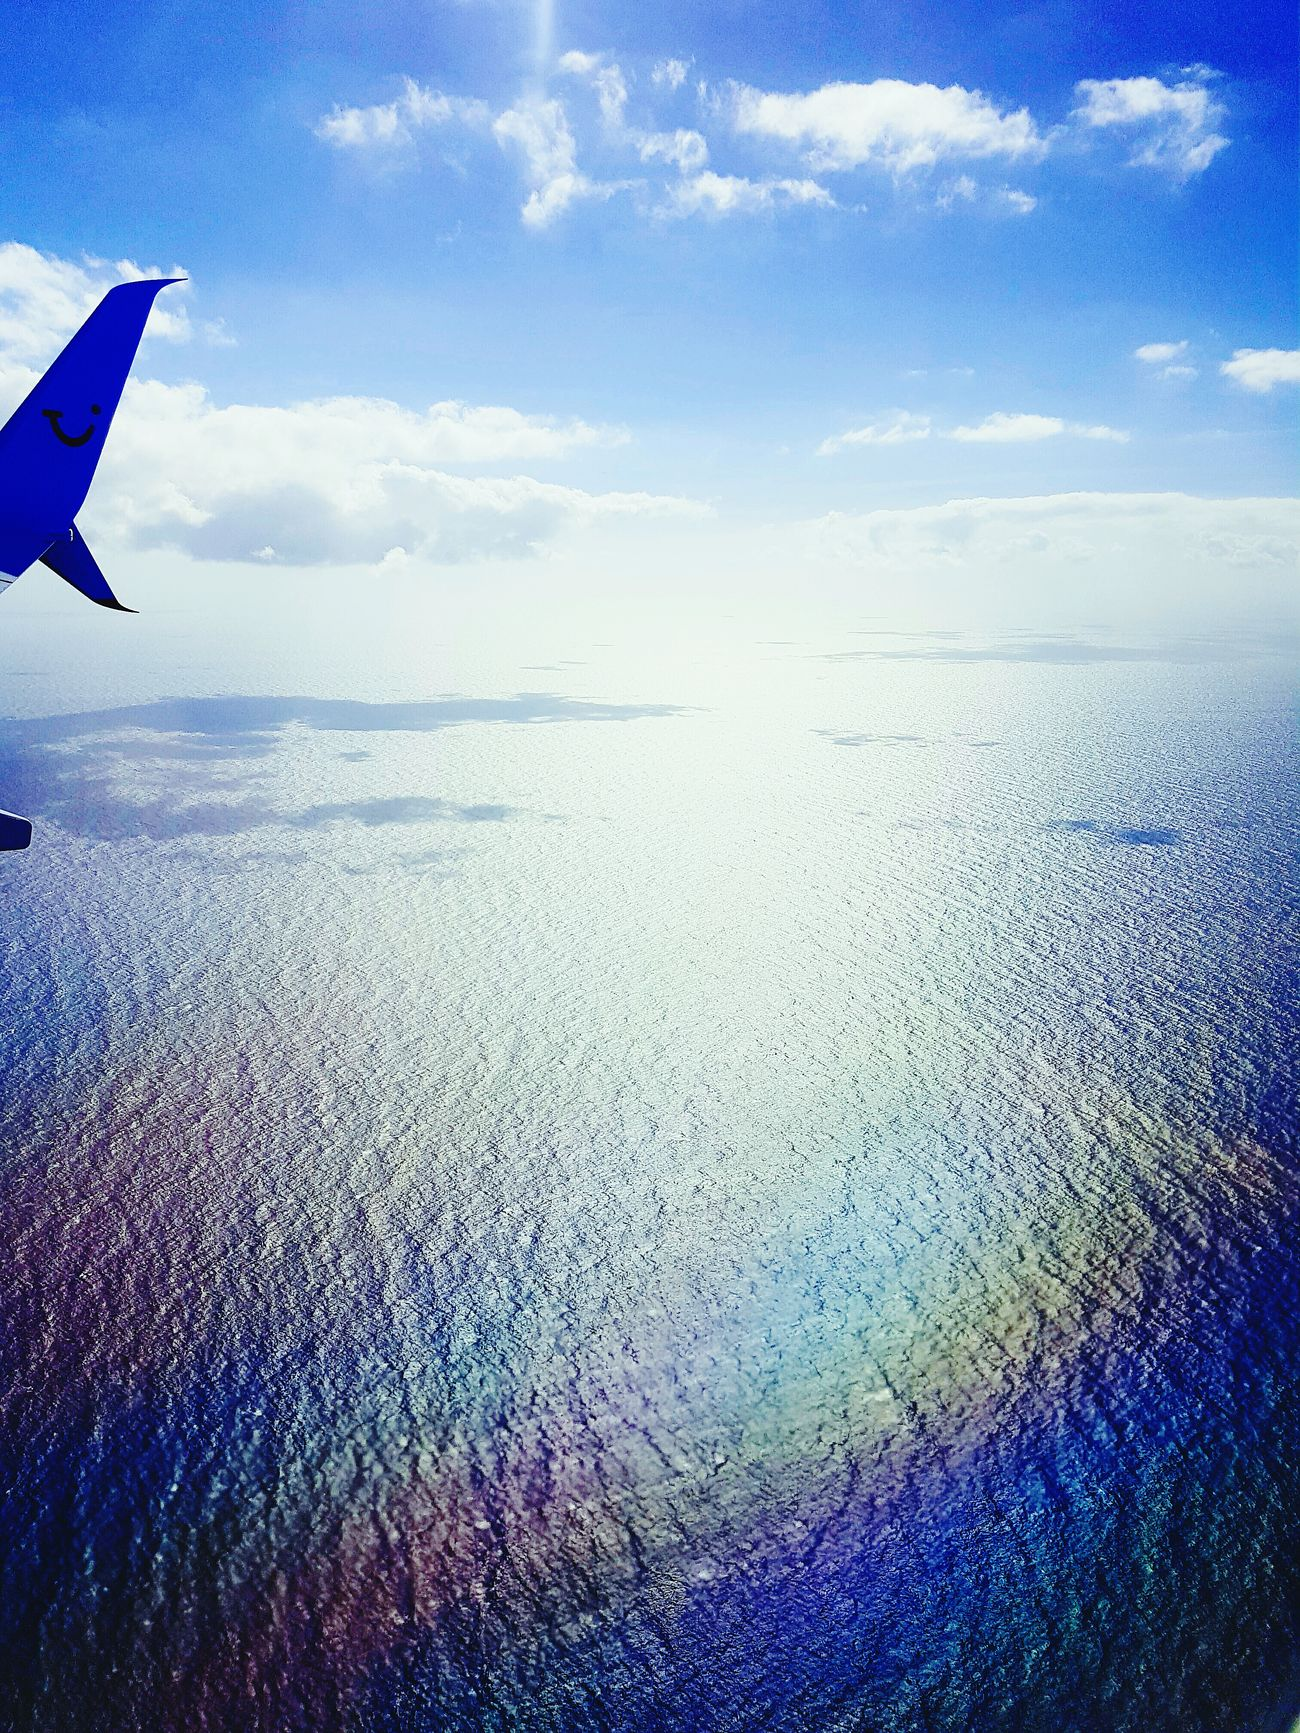 What a wonderful view! Holiday Trip Airplane Sky Ocean View